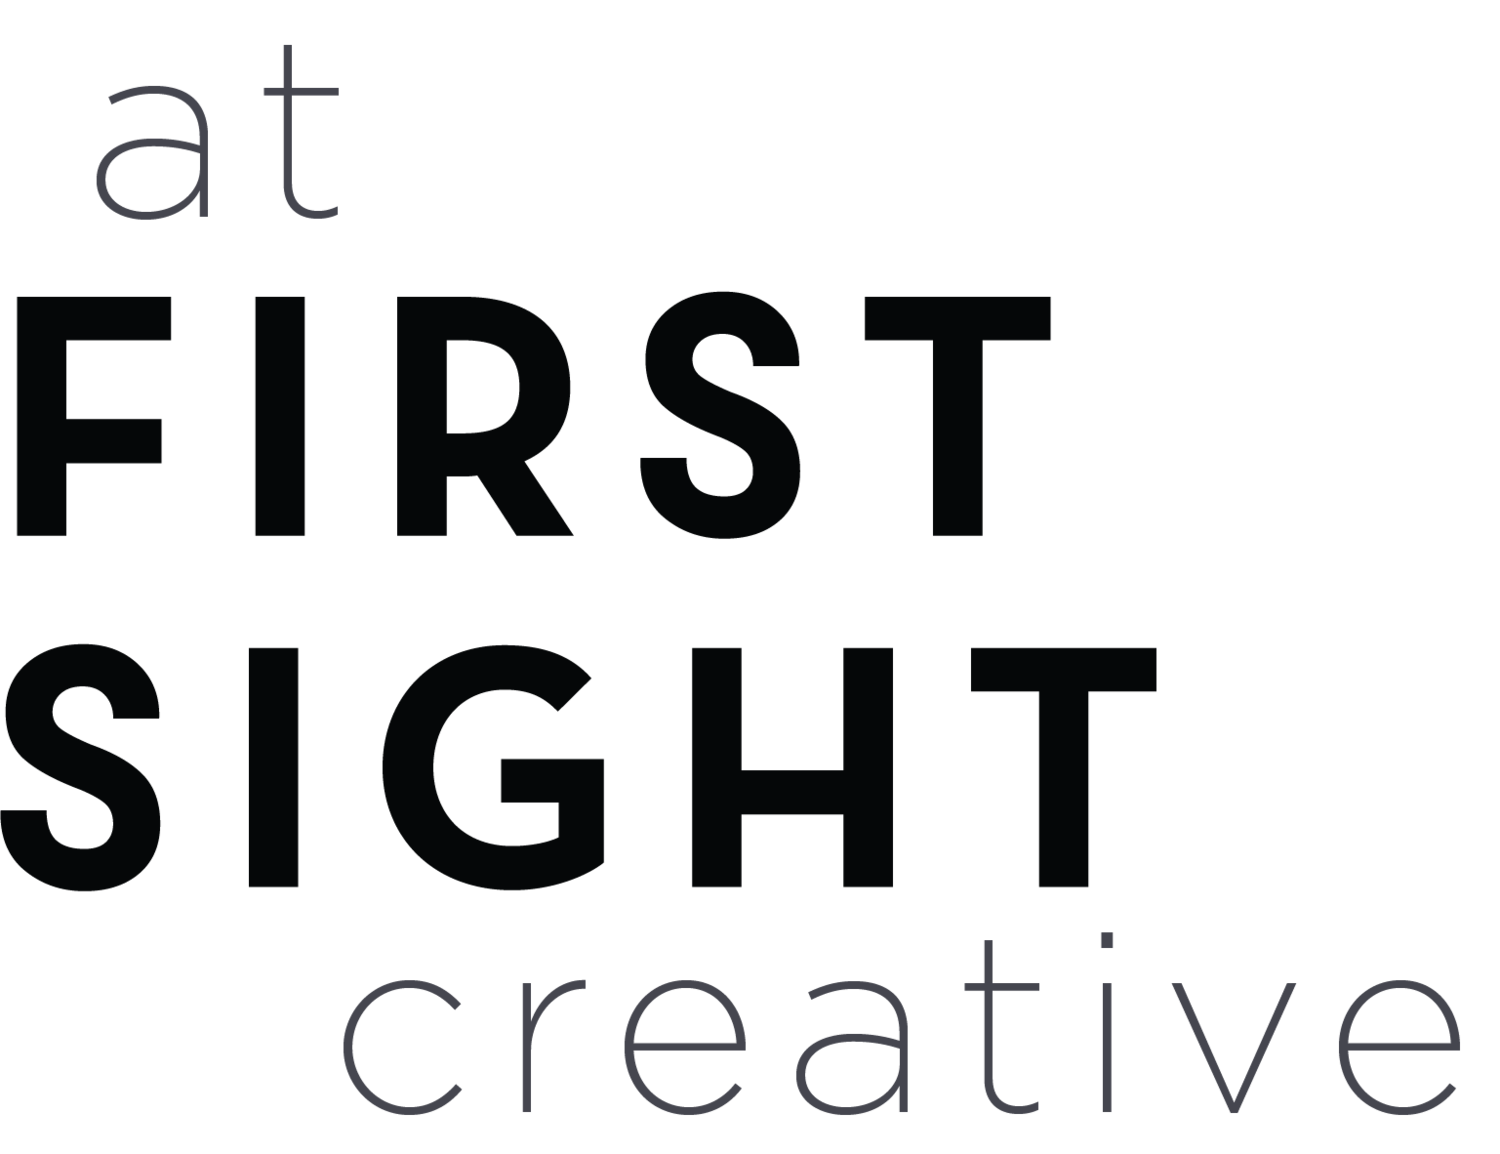 Best Web Design and Branding Services | At First Sight Creative